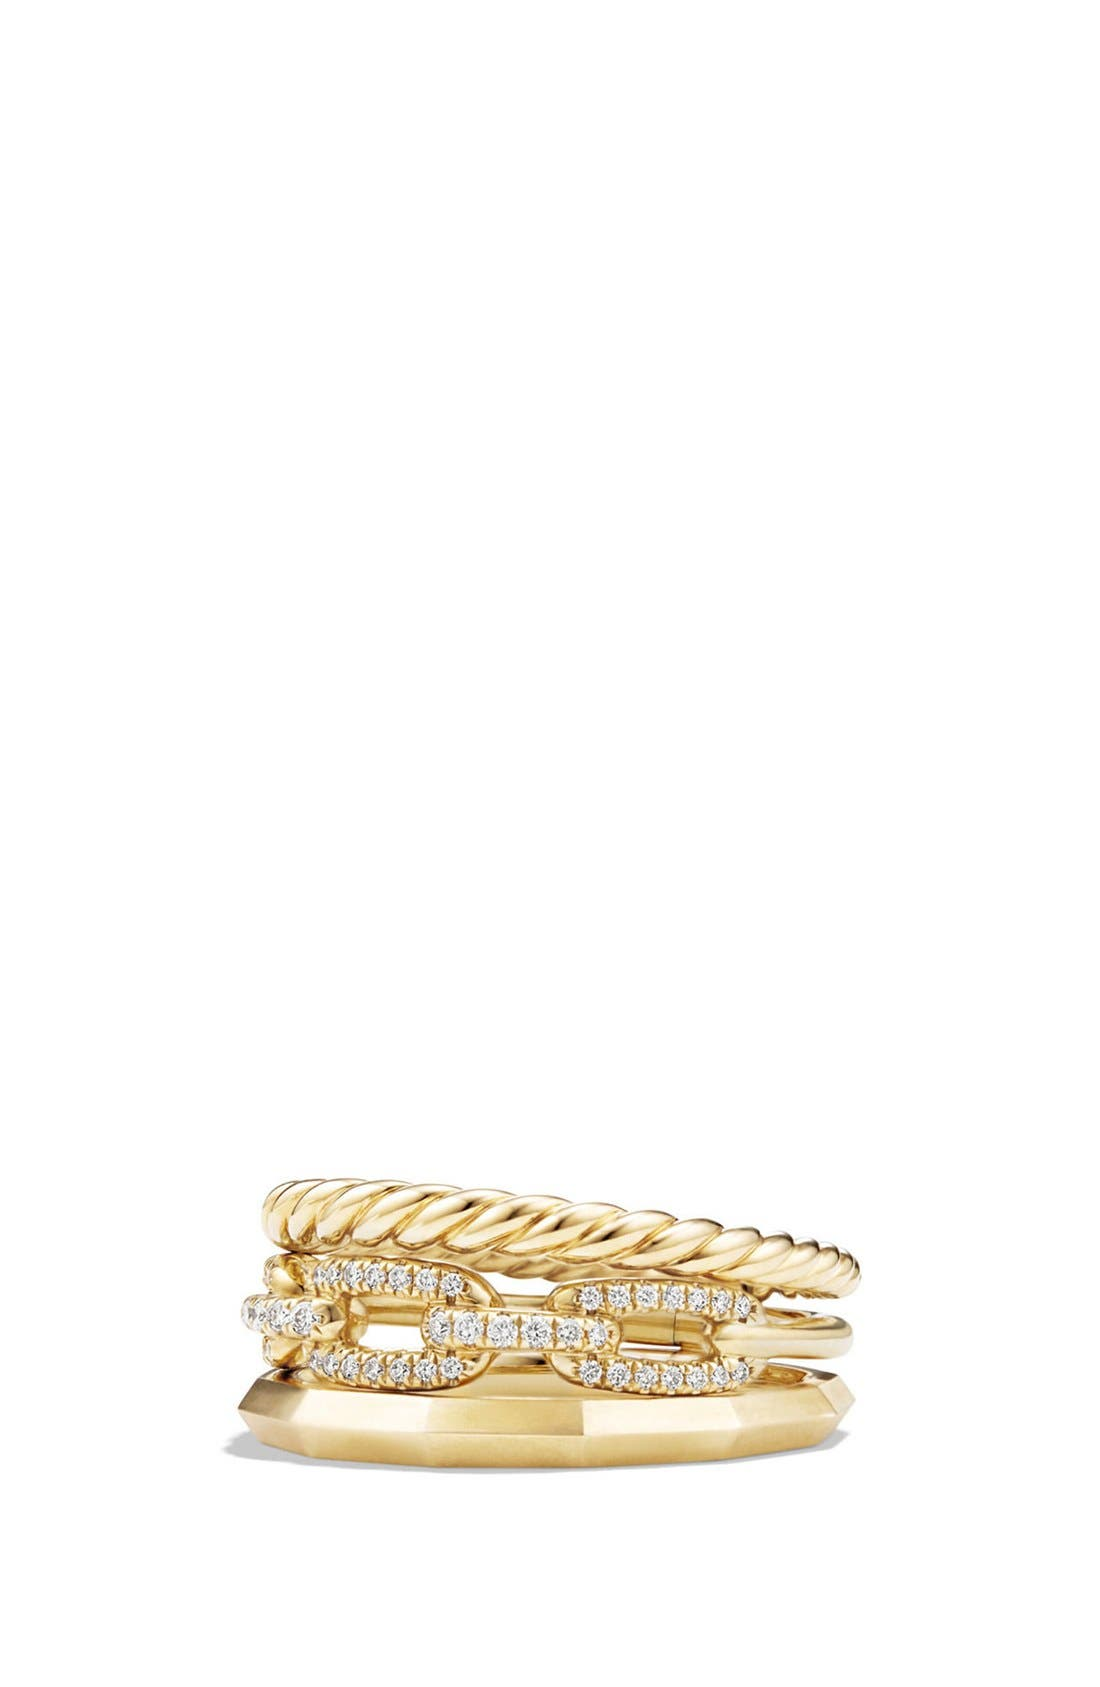 Main Image - David Yurman 'Stax' Narrow Diamond Ring